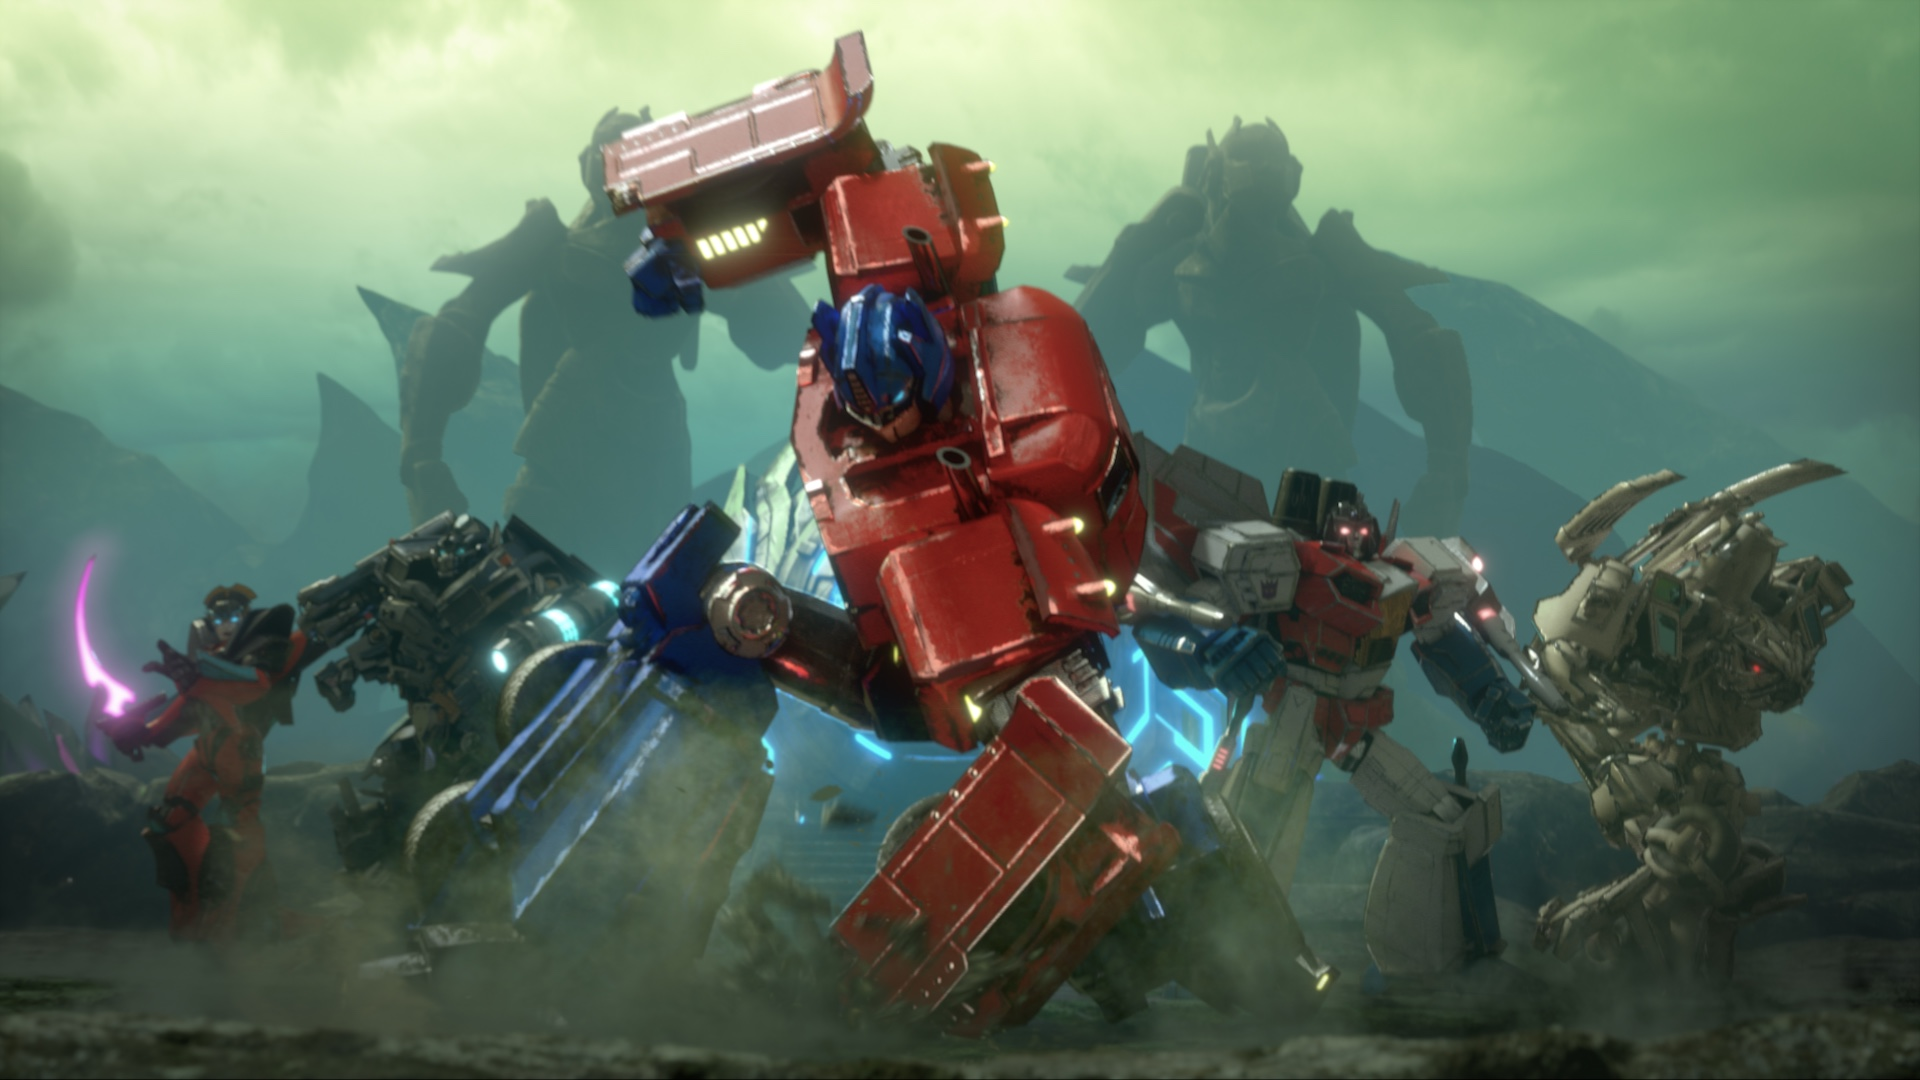 "<a href=""/transformers-forged-to-fight"">Transformers: Forged to Fight</a>"